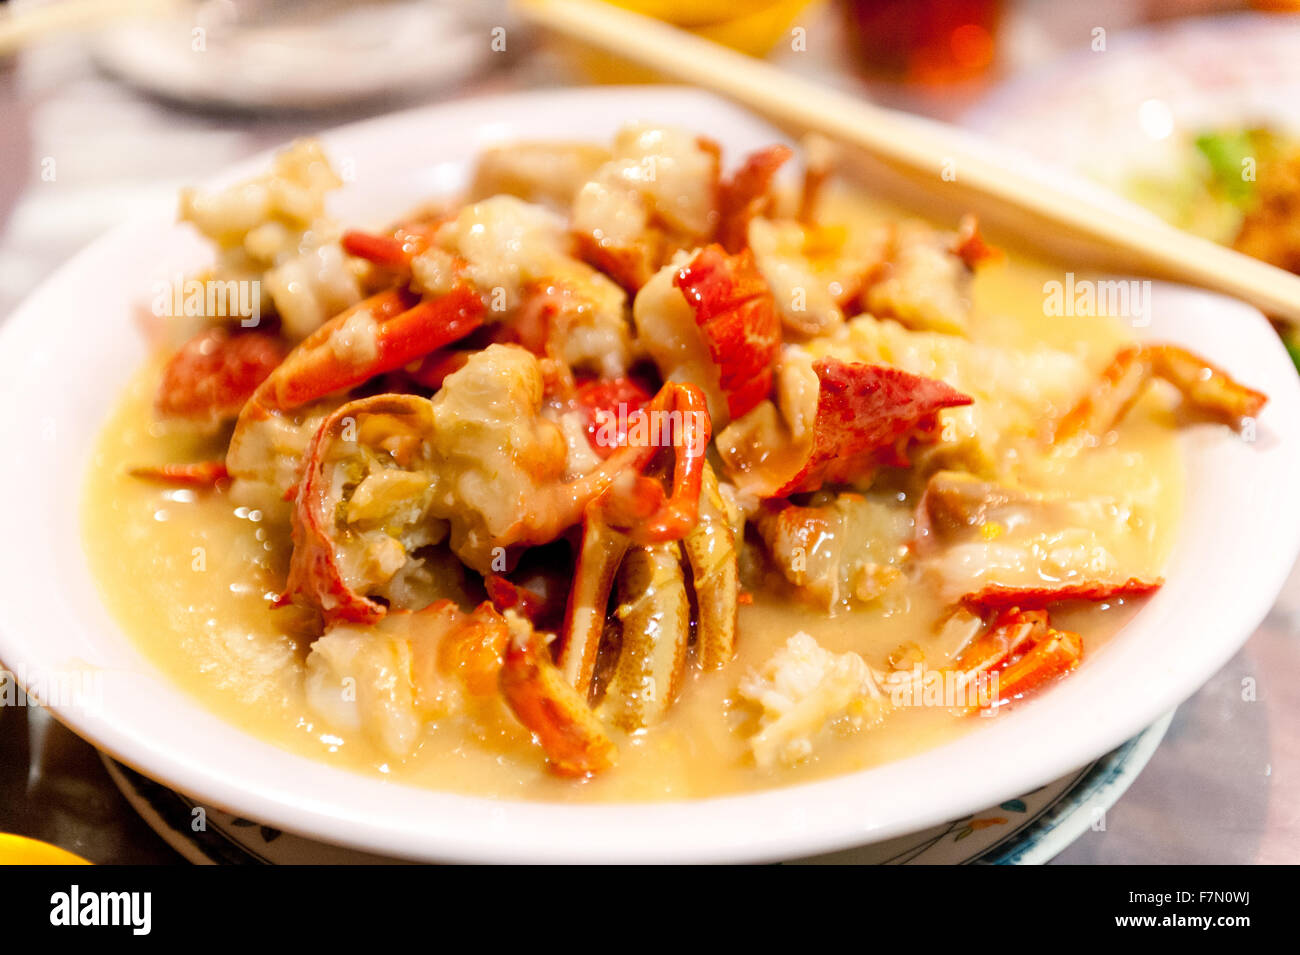 Cut up lobster dish in a white sauce - Stock Image